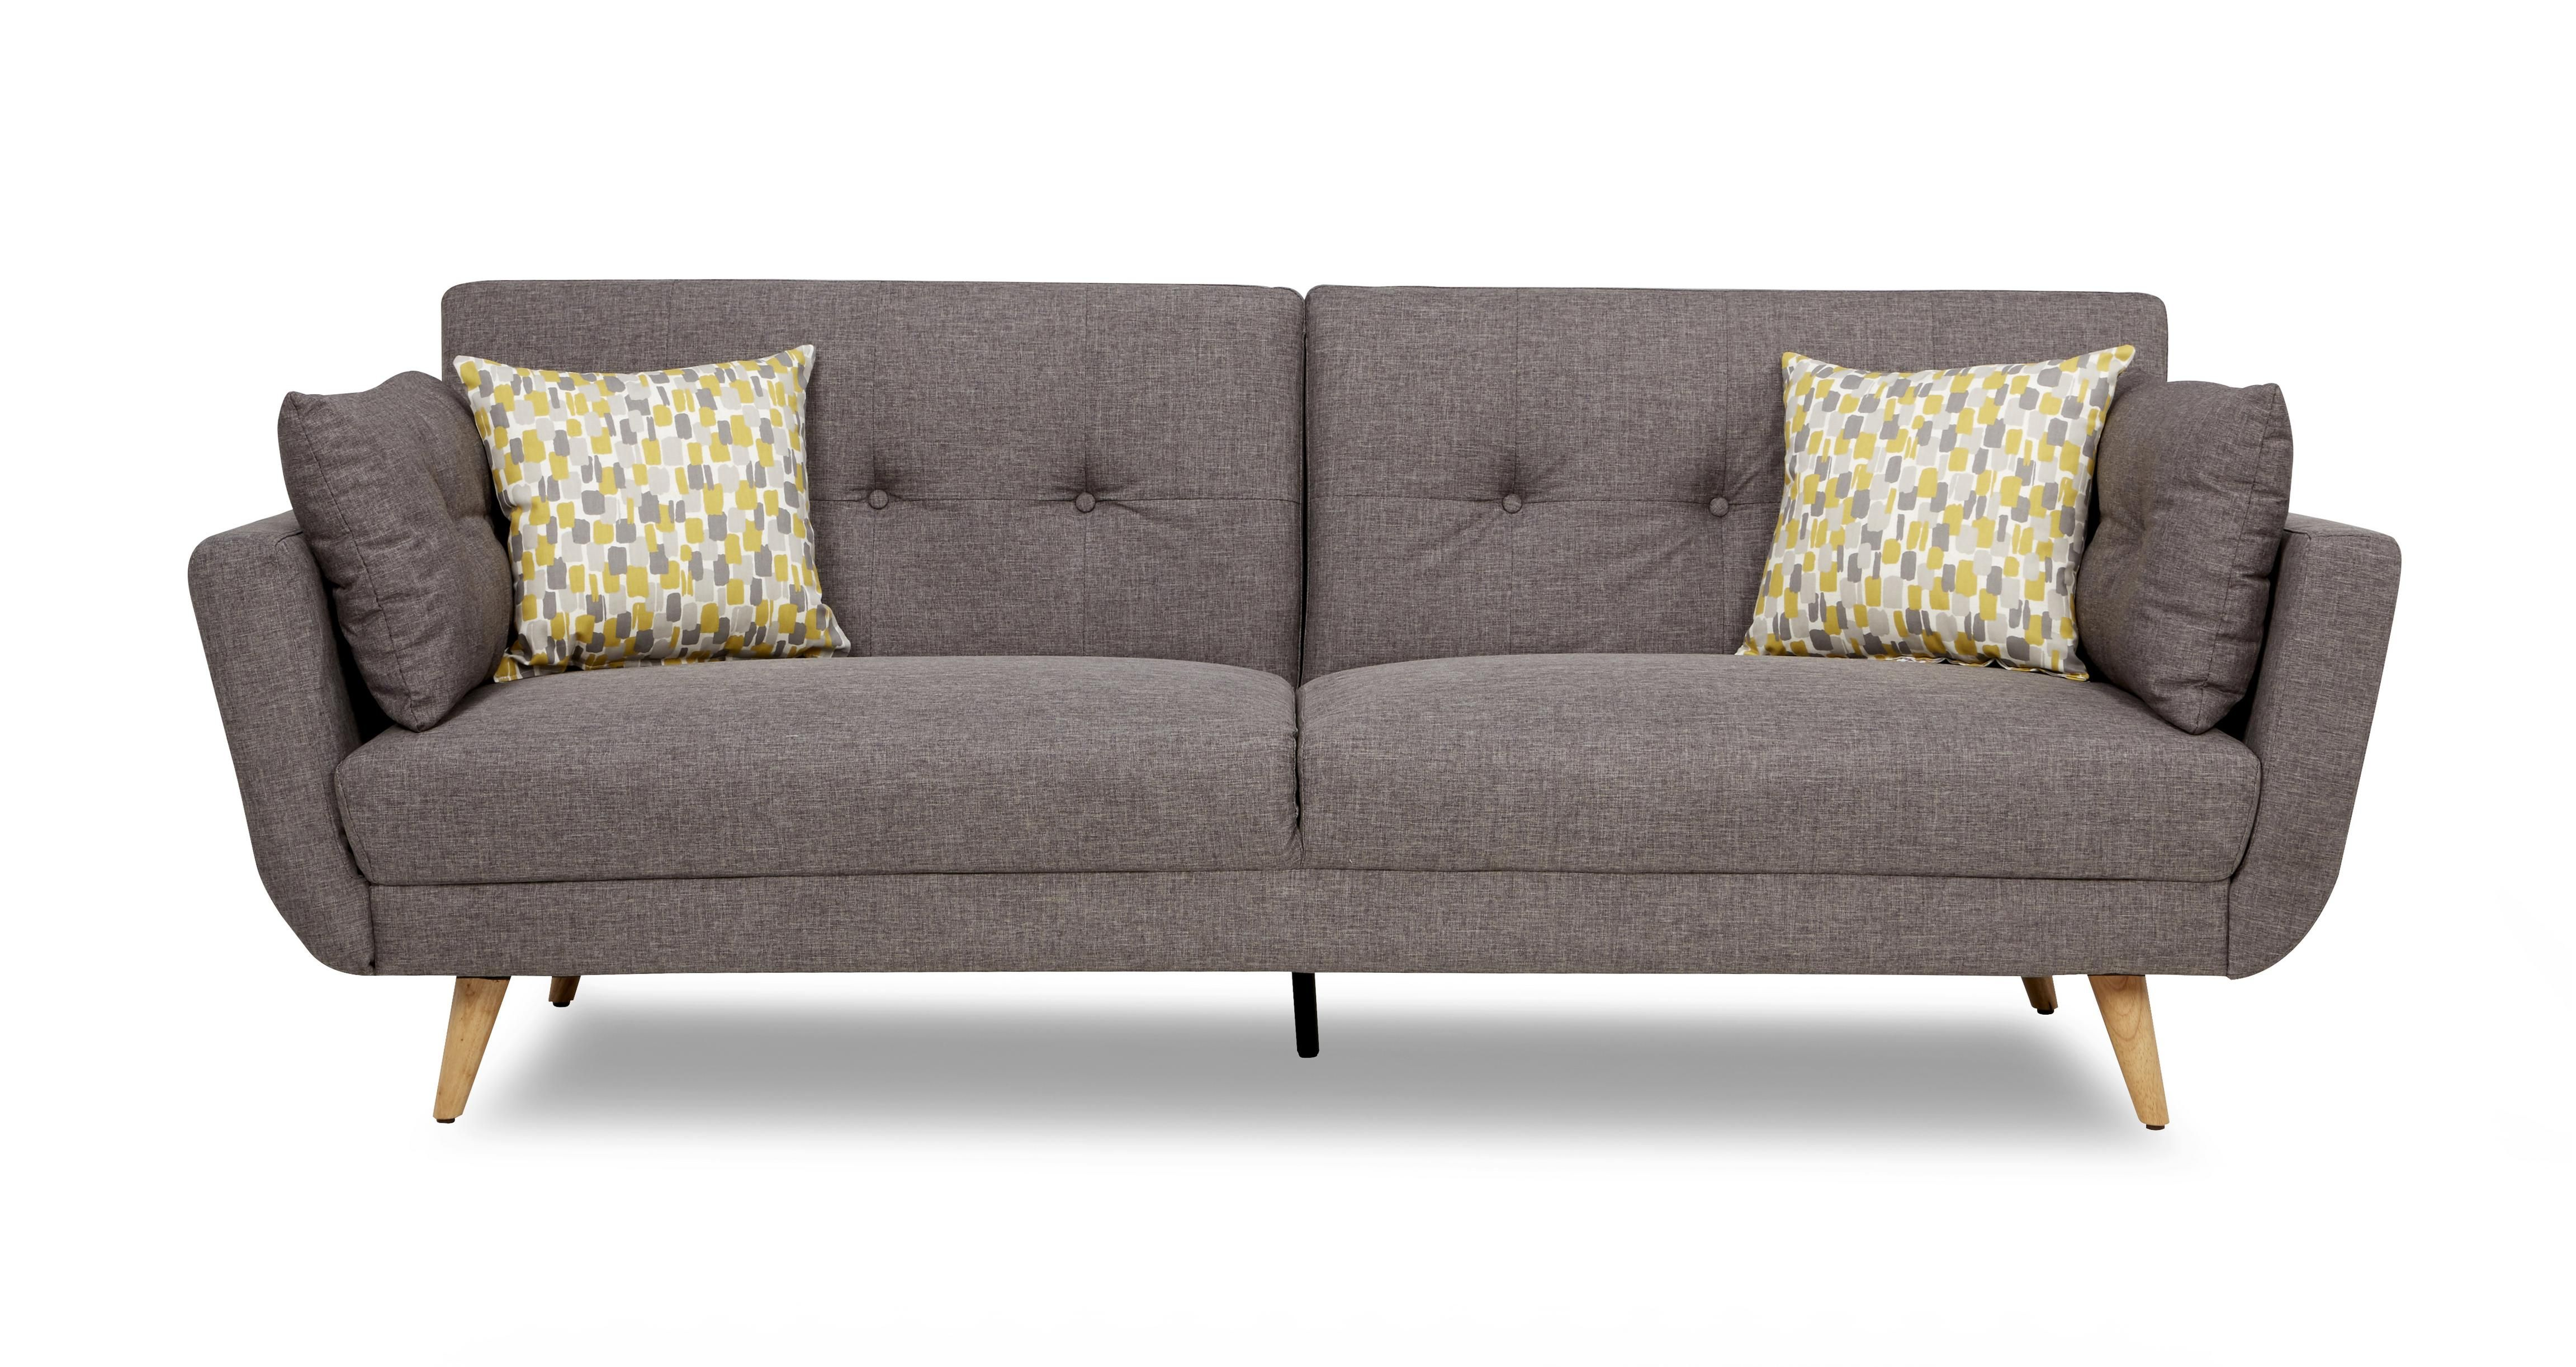 inca sofabed   dfs inca sofabed   dfs   living room   pinterest   living rooms and room  rh   pinterest